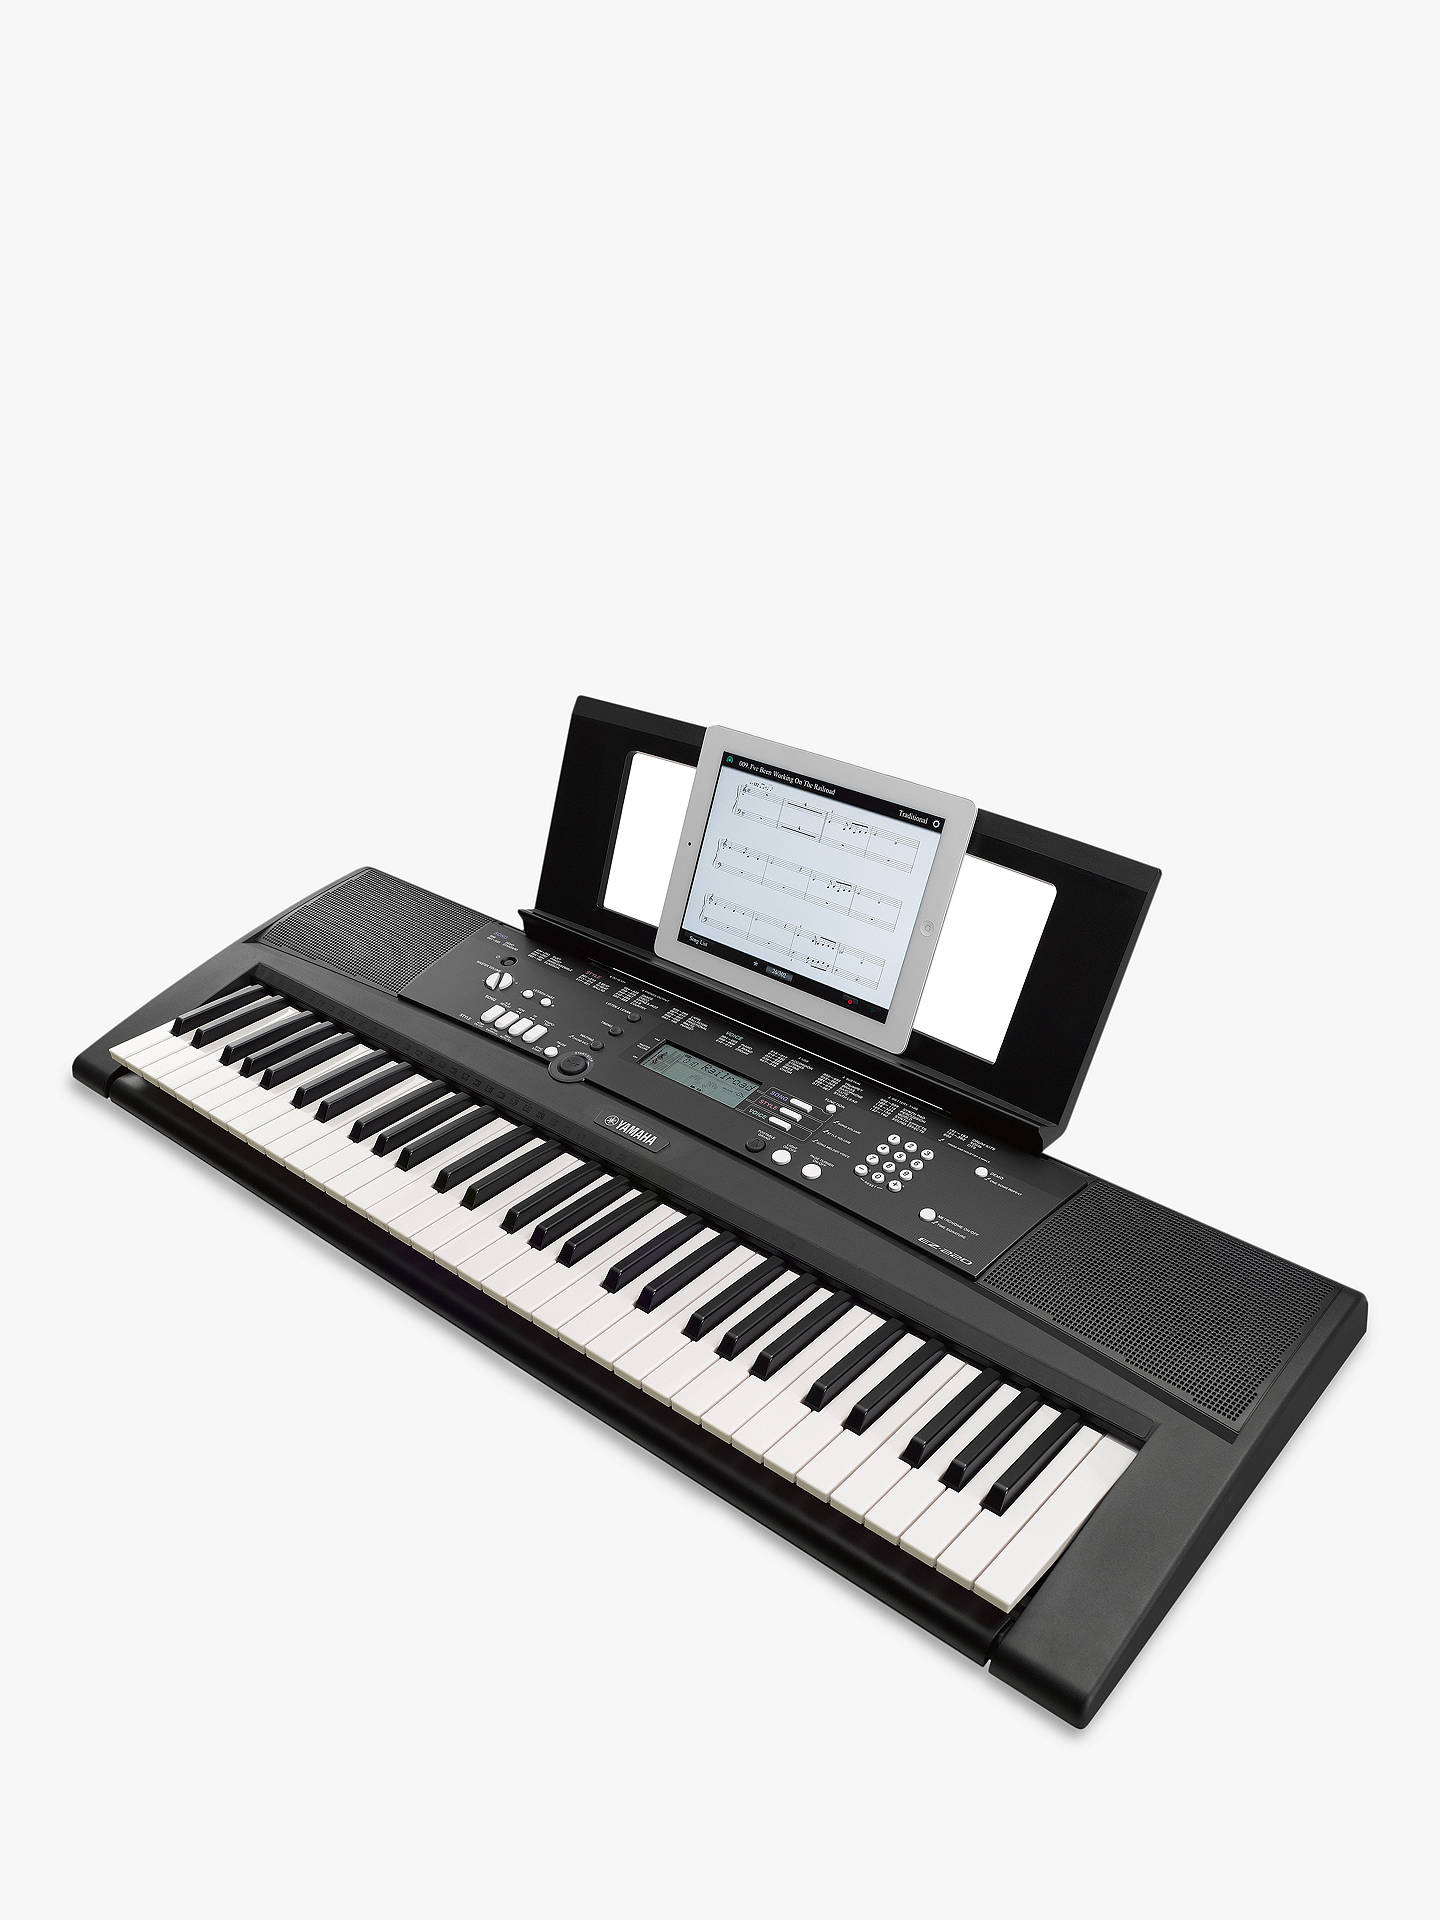 yamaha ez 220 portable electronic keyboard at john lewis. Black Bedroom Furniture Sets. Home Design Ideas